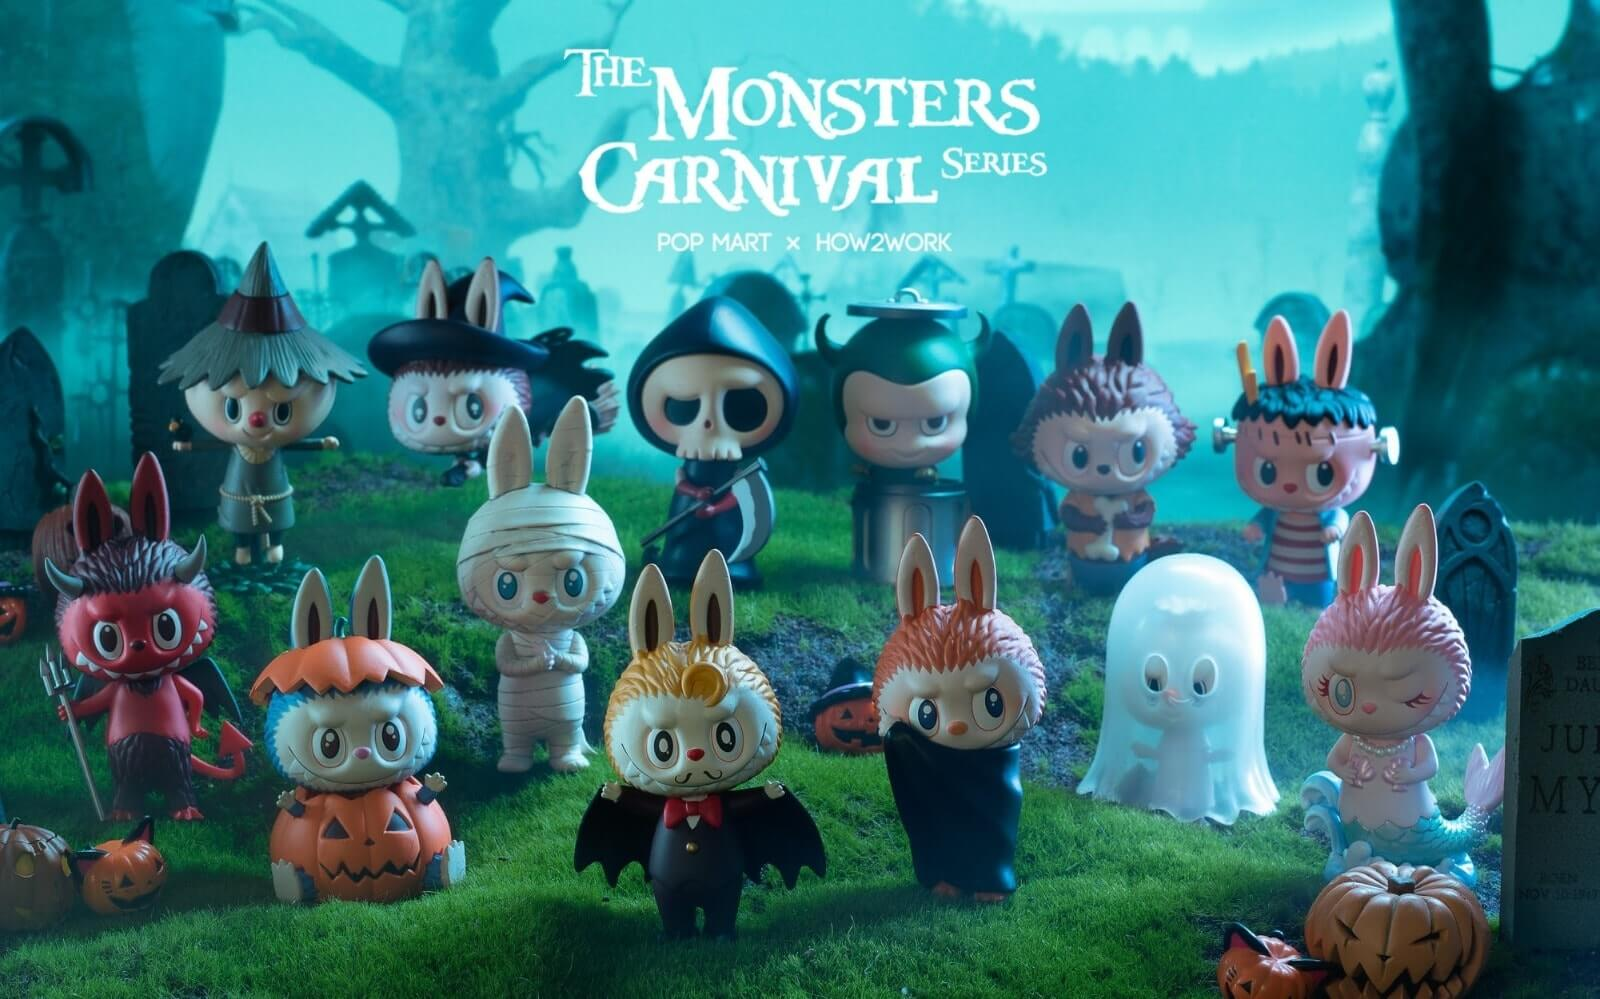 The Monsters Carnival Series Popmart How2Work Kasing Lung